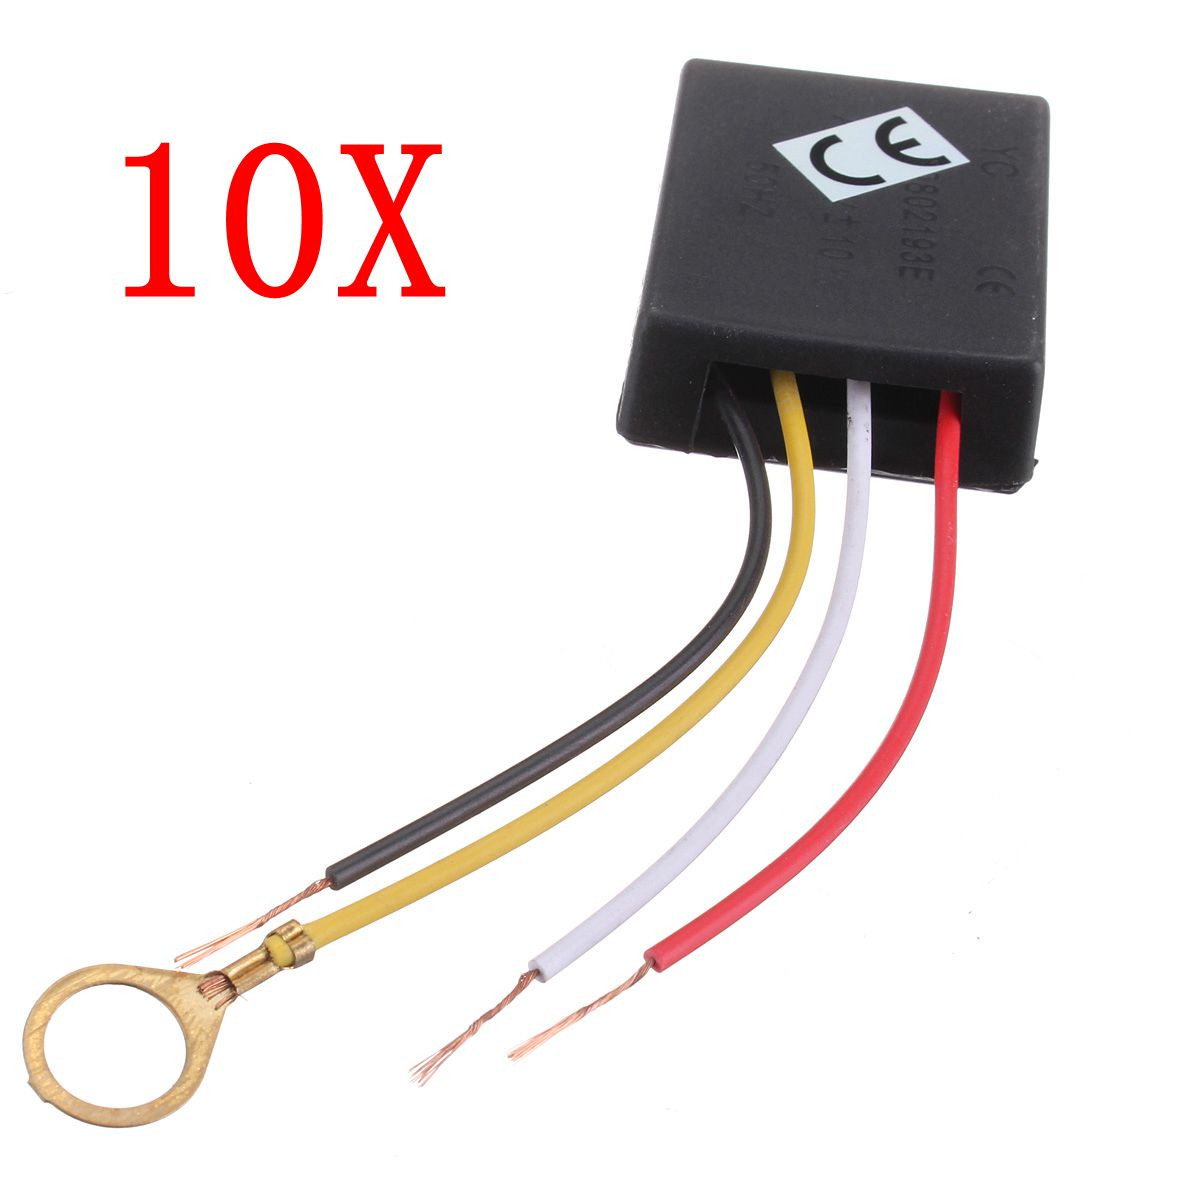 10Pcs 3 Way 110/220V Table Desk Light Lamp Touch Switch Control Sensor Dimmer Repair for Bulbs